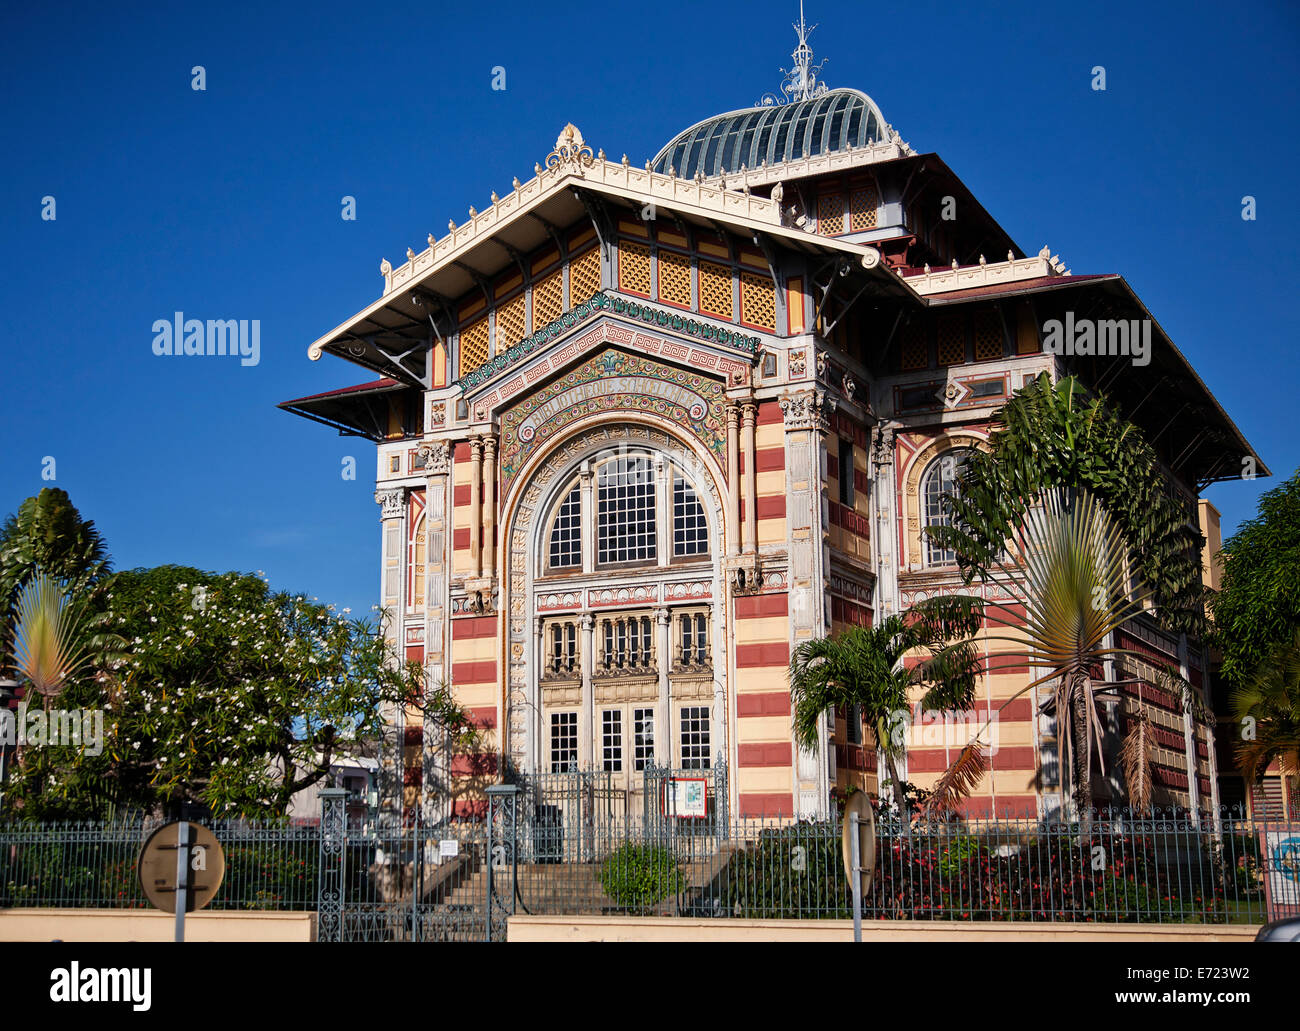 Martinique, Fort-de-France, Bibliotheque Schoelcher exterior. - Stock Image